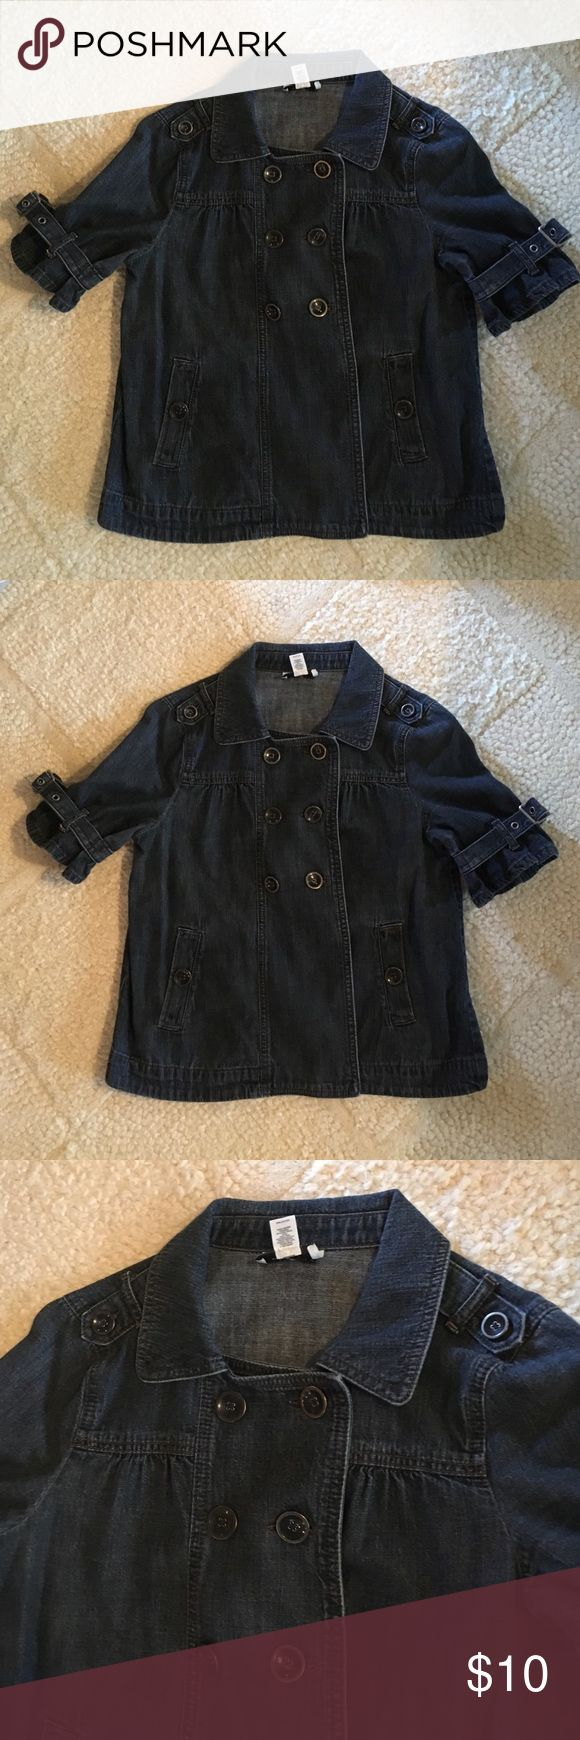 Jean jacket from Loft Short sleeved jean jacket from Loft with button closure. I just realized it was a medium petite, but would fit a medium too. LOFT Jackets & Coats Jean Jackets